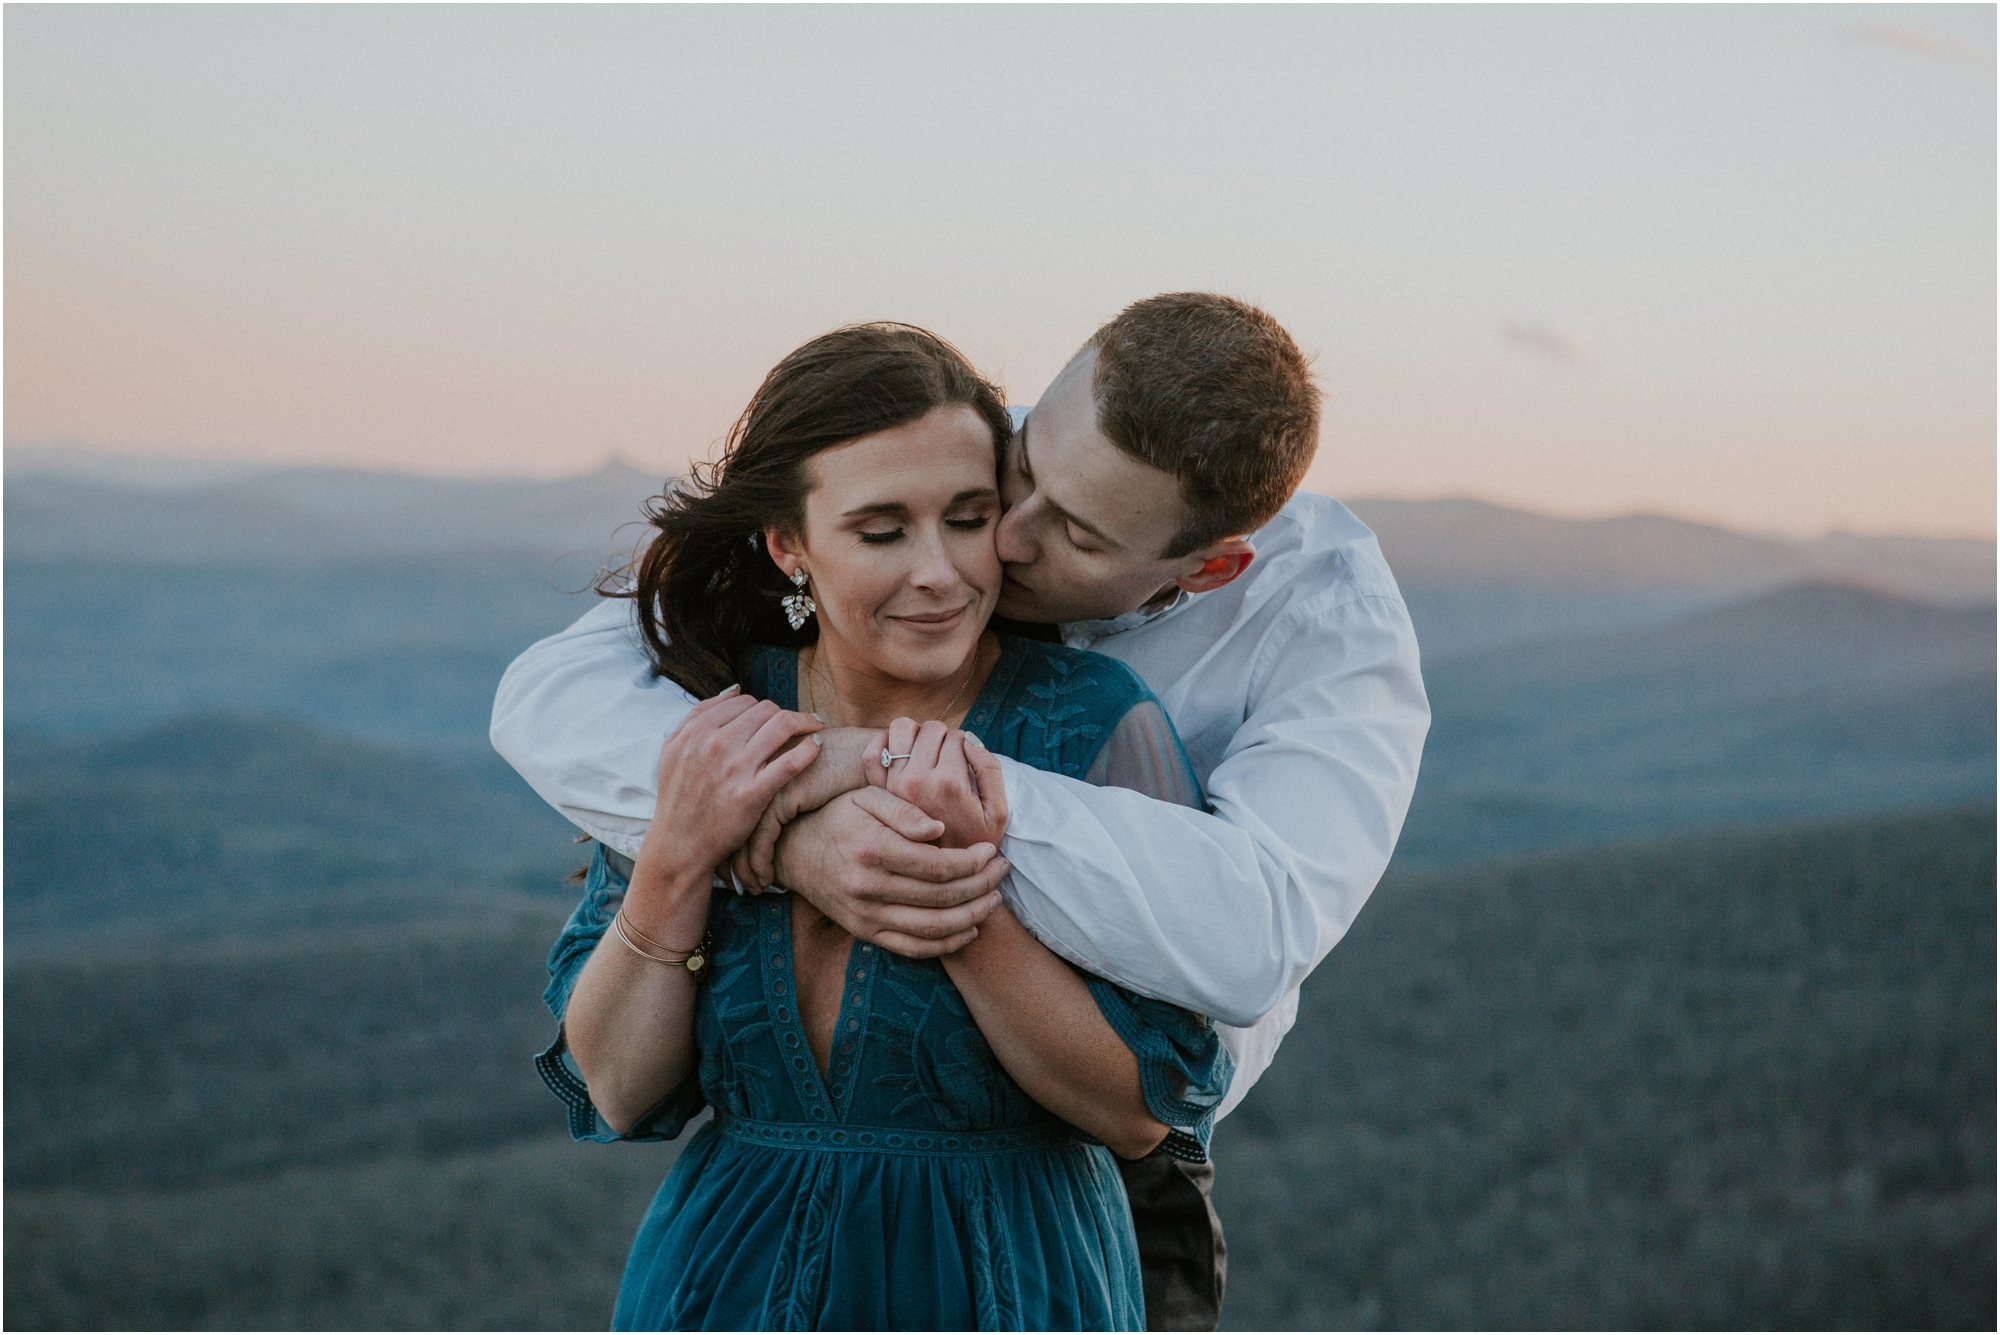 blue-ridge-parkway-engagement-session-north-carolina-boone-blowing-rock-northeast-tennessee-katy-sergent-photography_0026.jpg